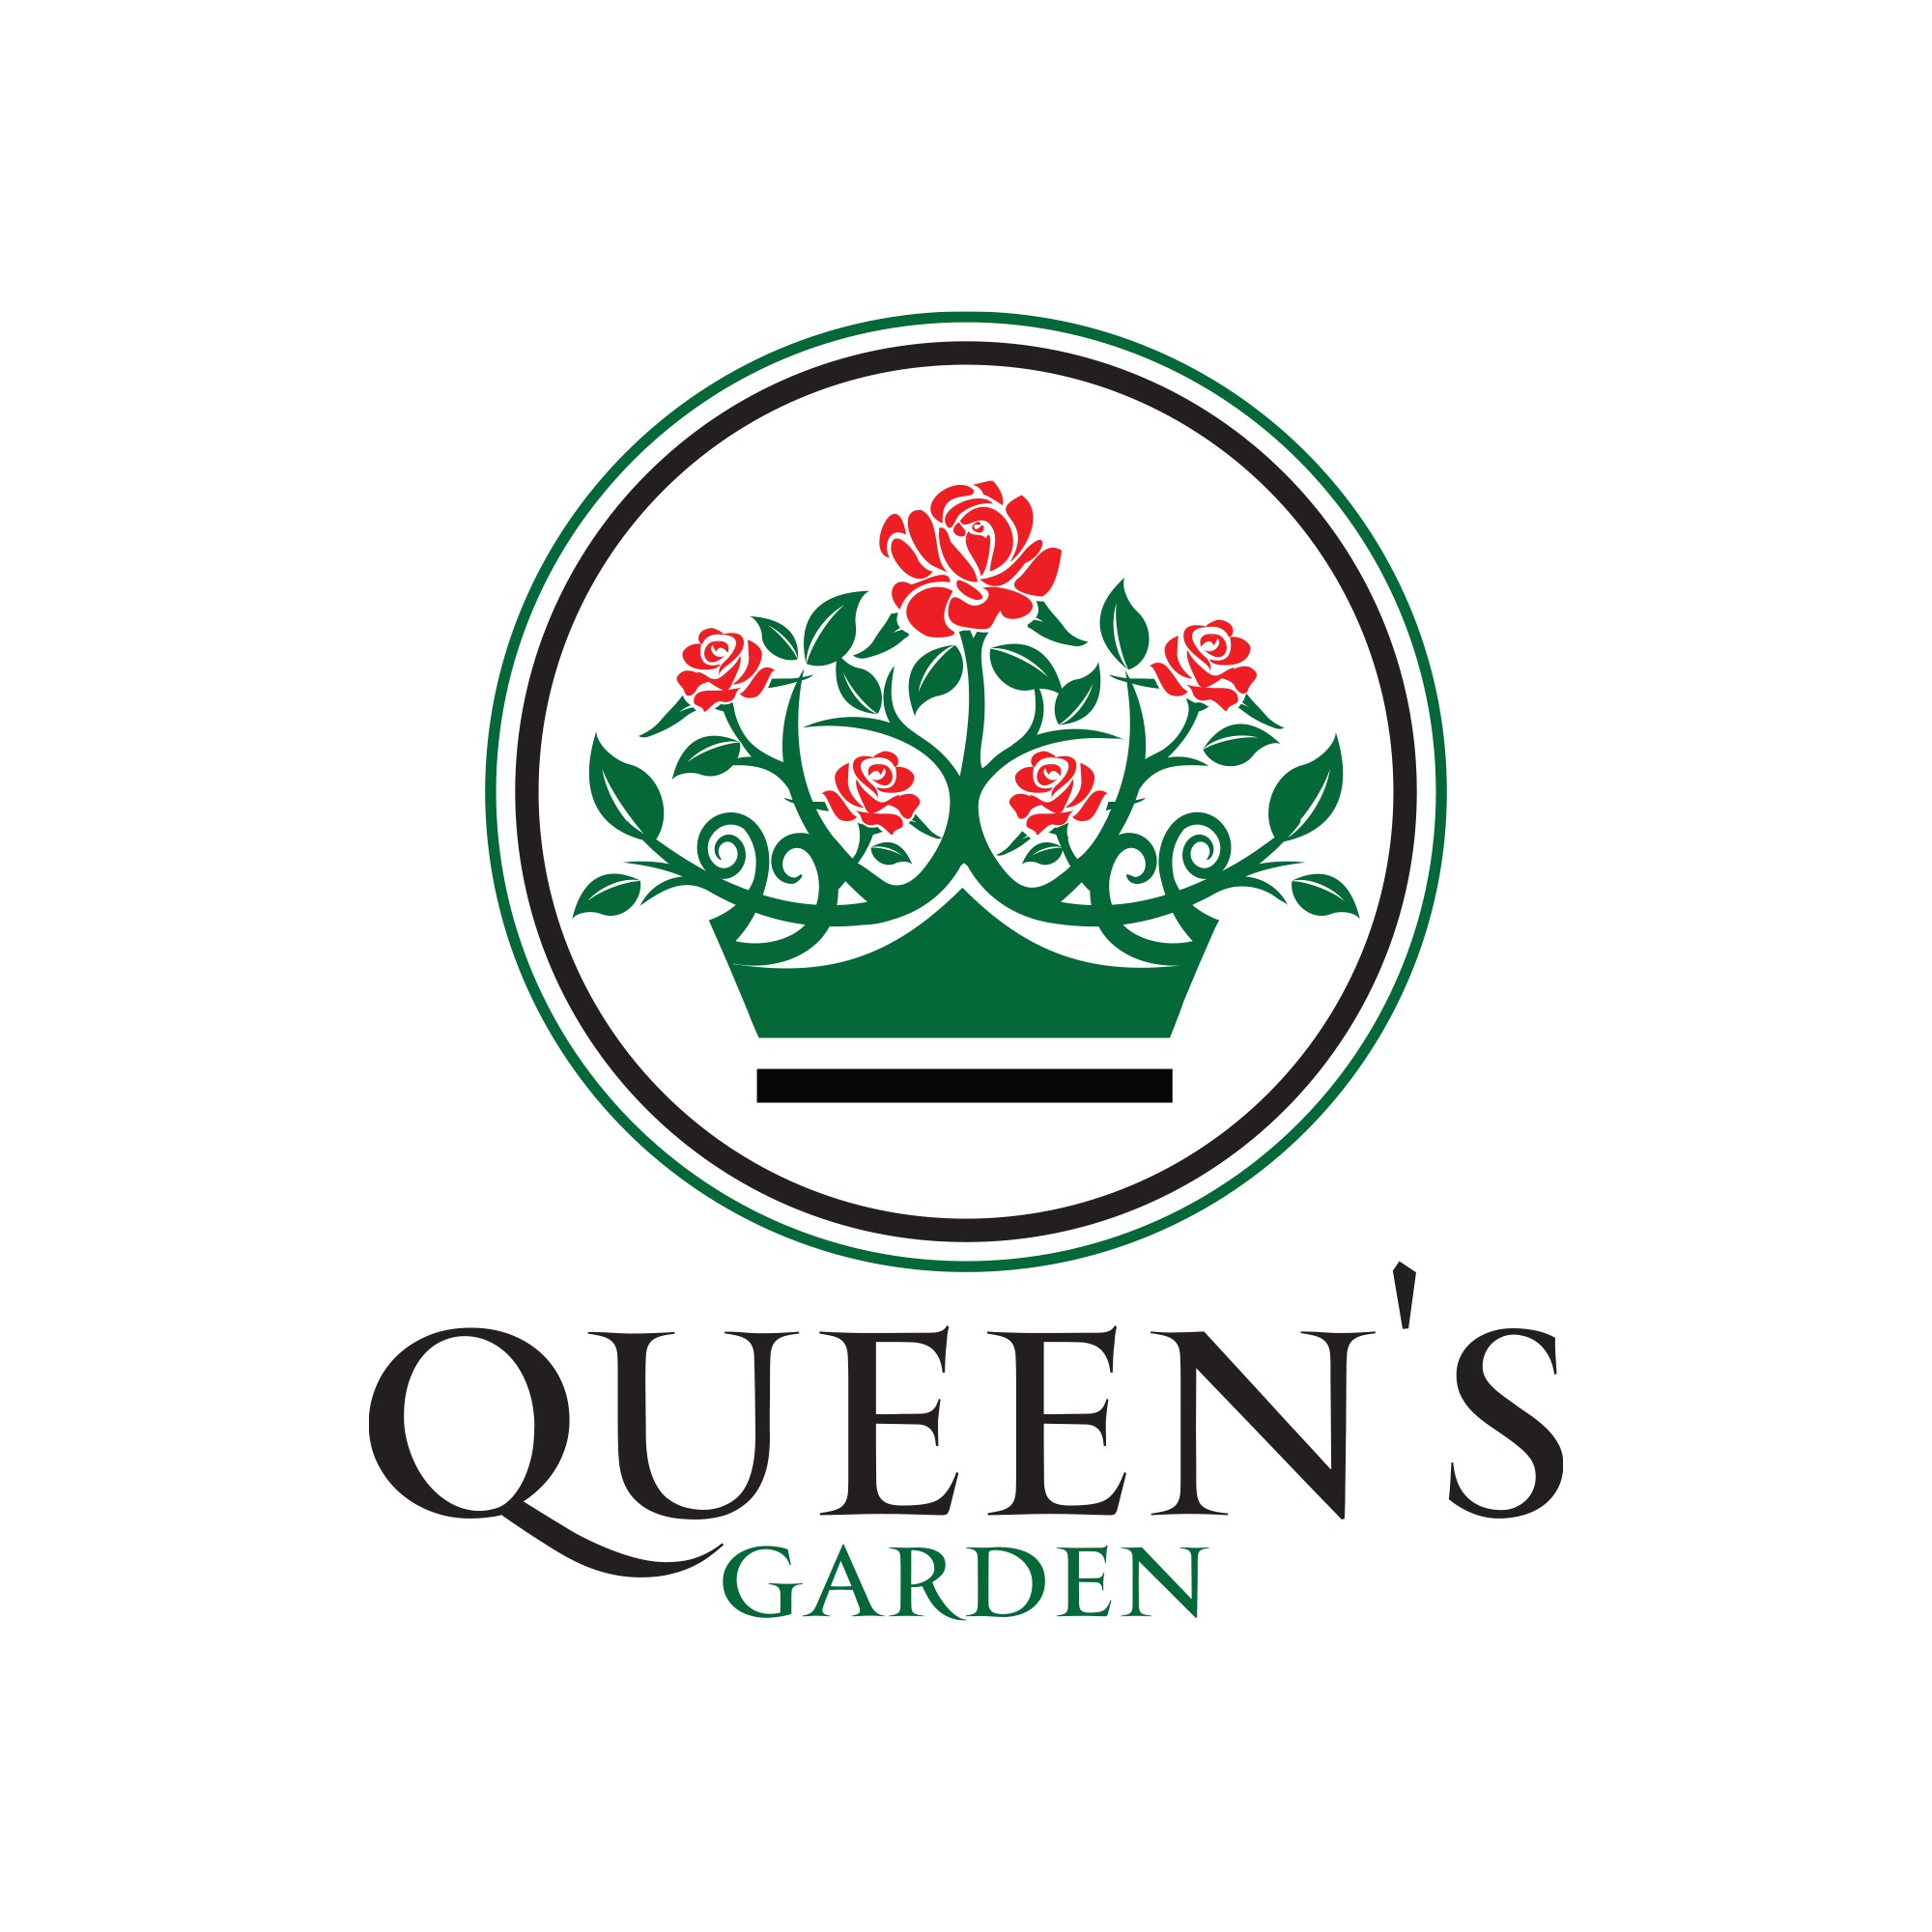 HELP ME! we need a LOGO design for a gardening products. This brand will be all over the world.